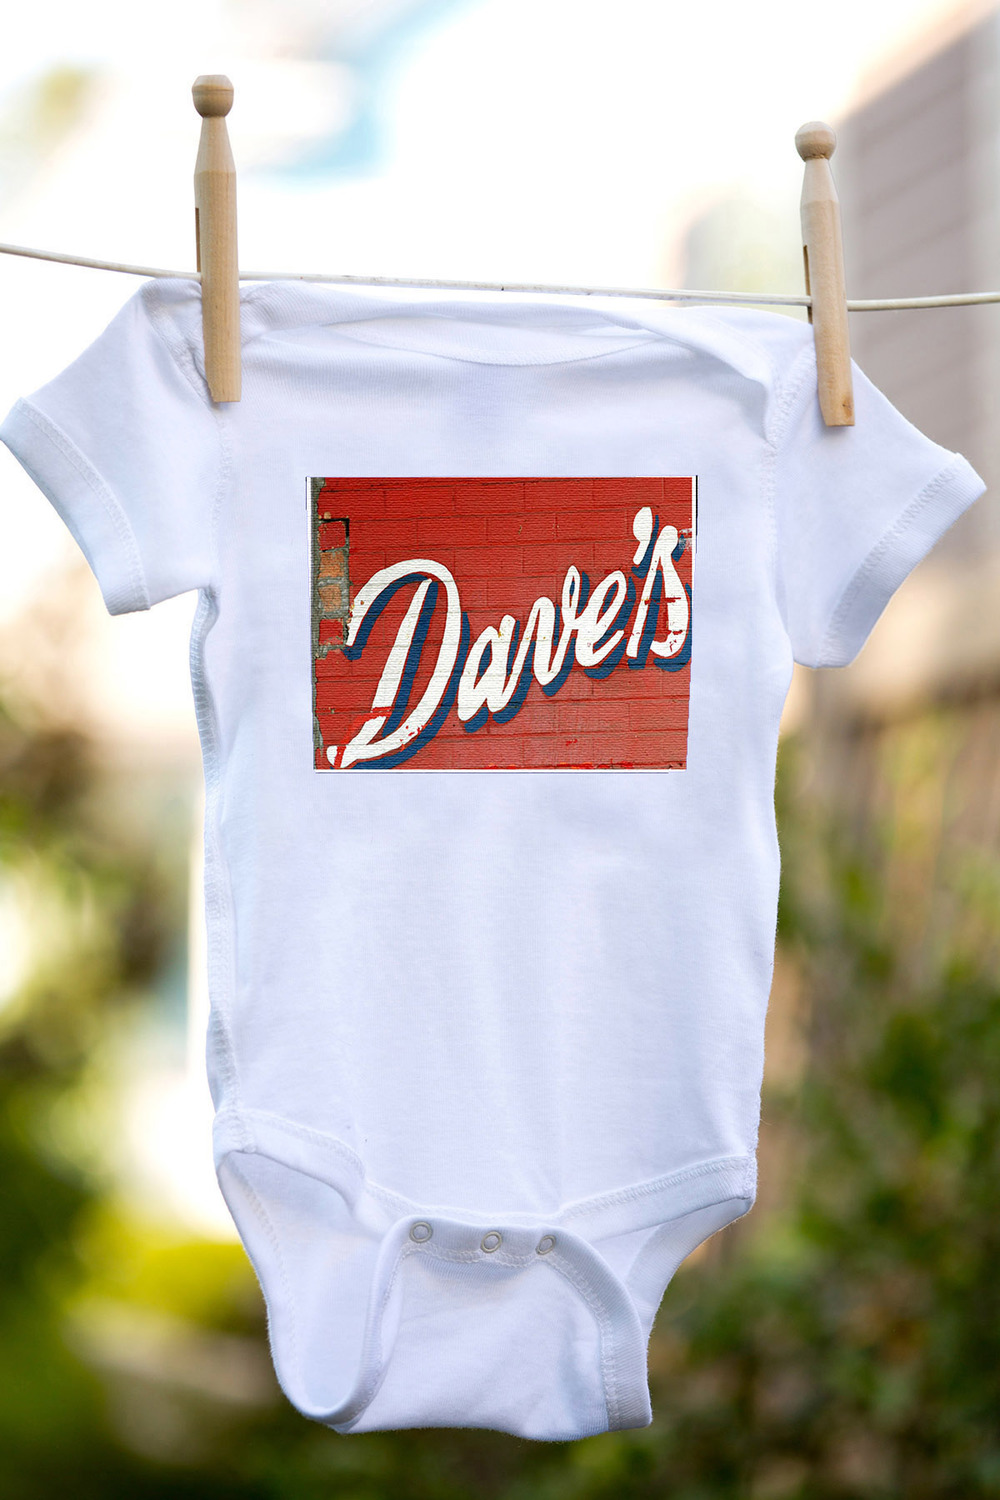 https://www.etsy.com/listing/235383191/personalized-baby-bodysuit-featuring-the?ref=shop_home_active_1&ga_search_query=dave